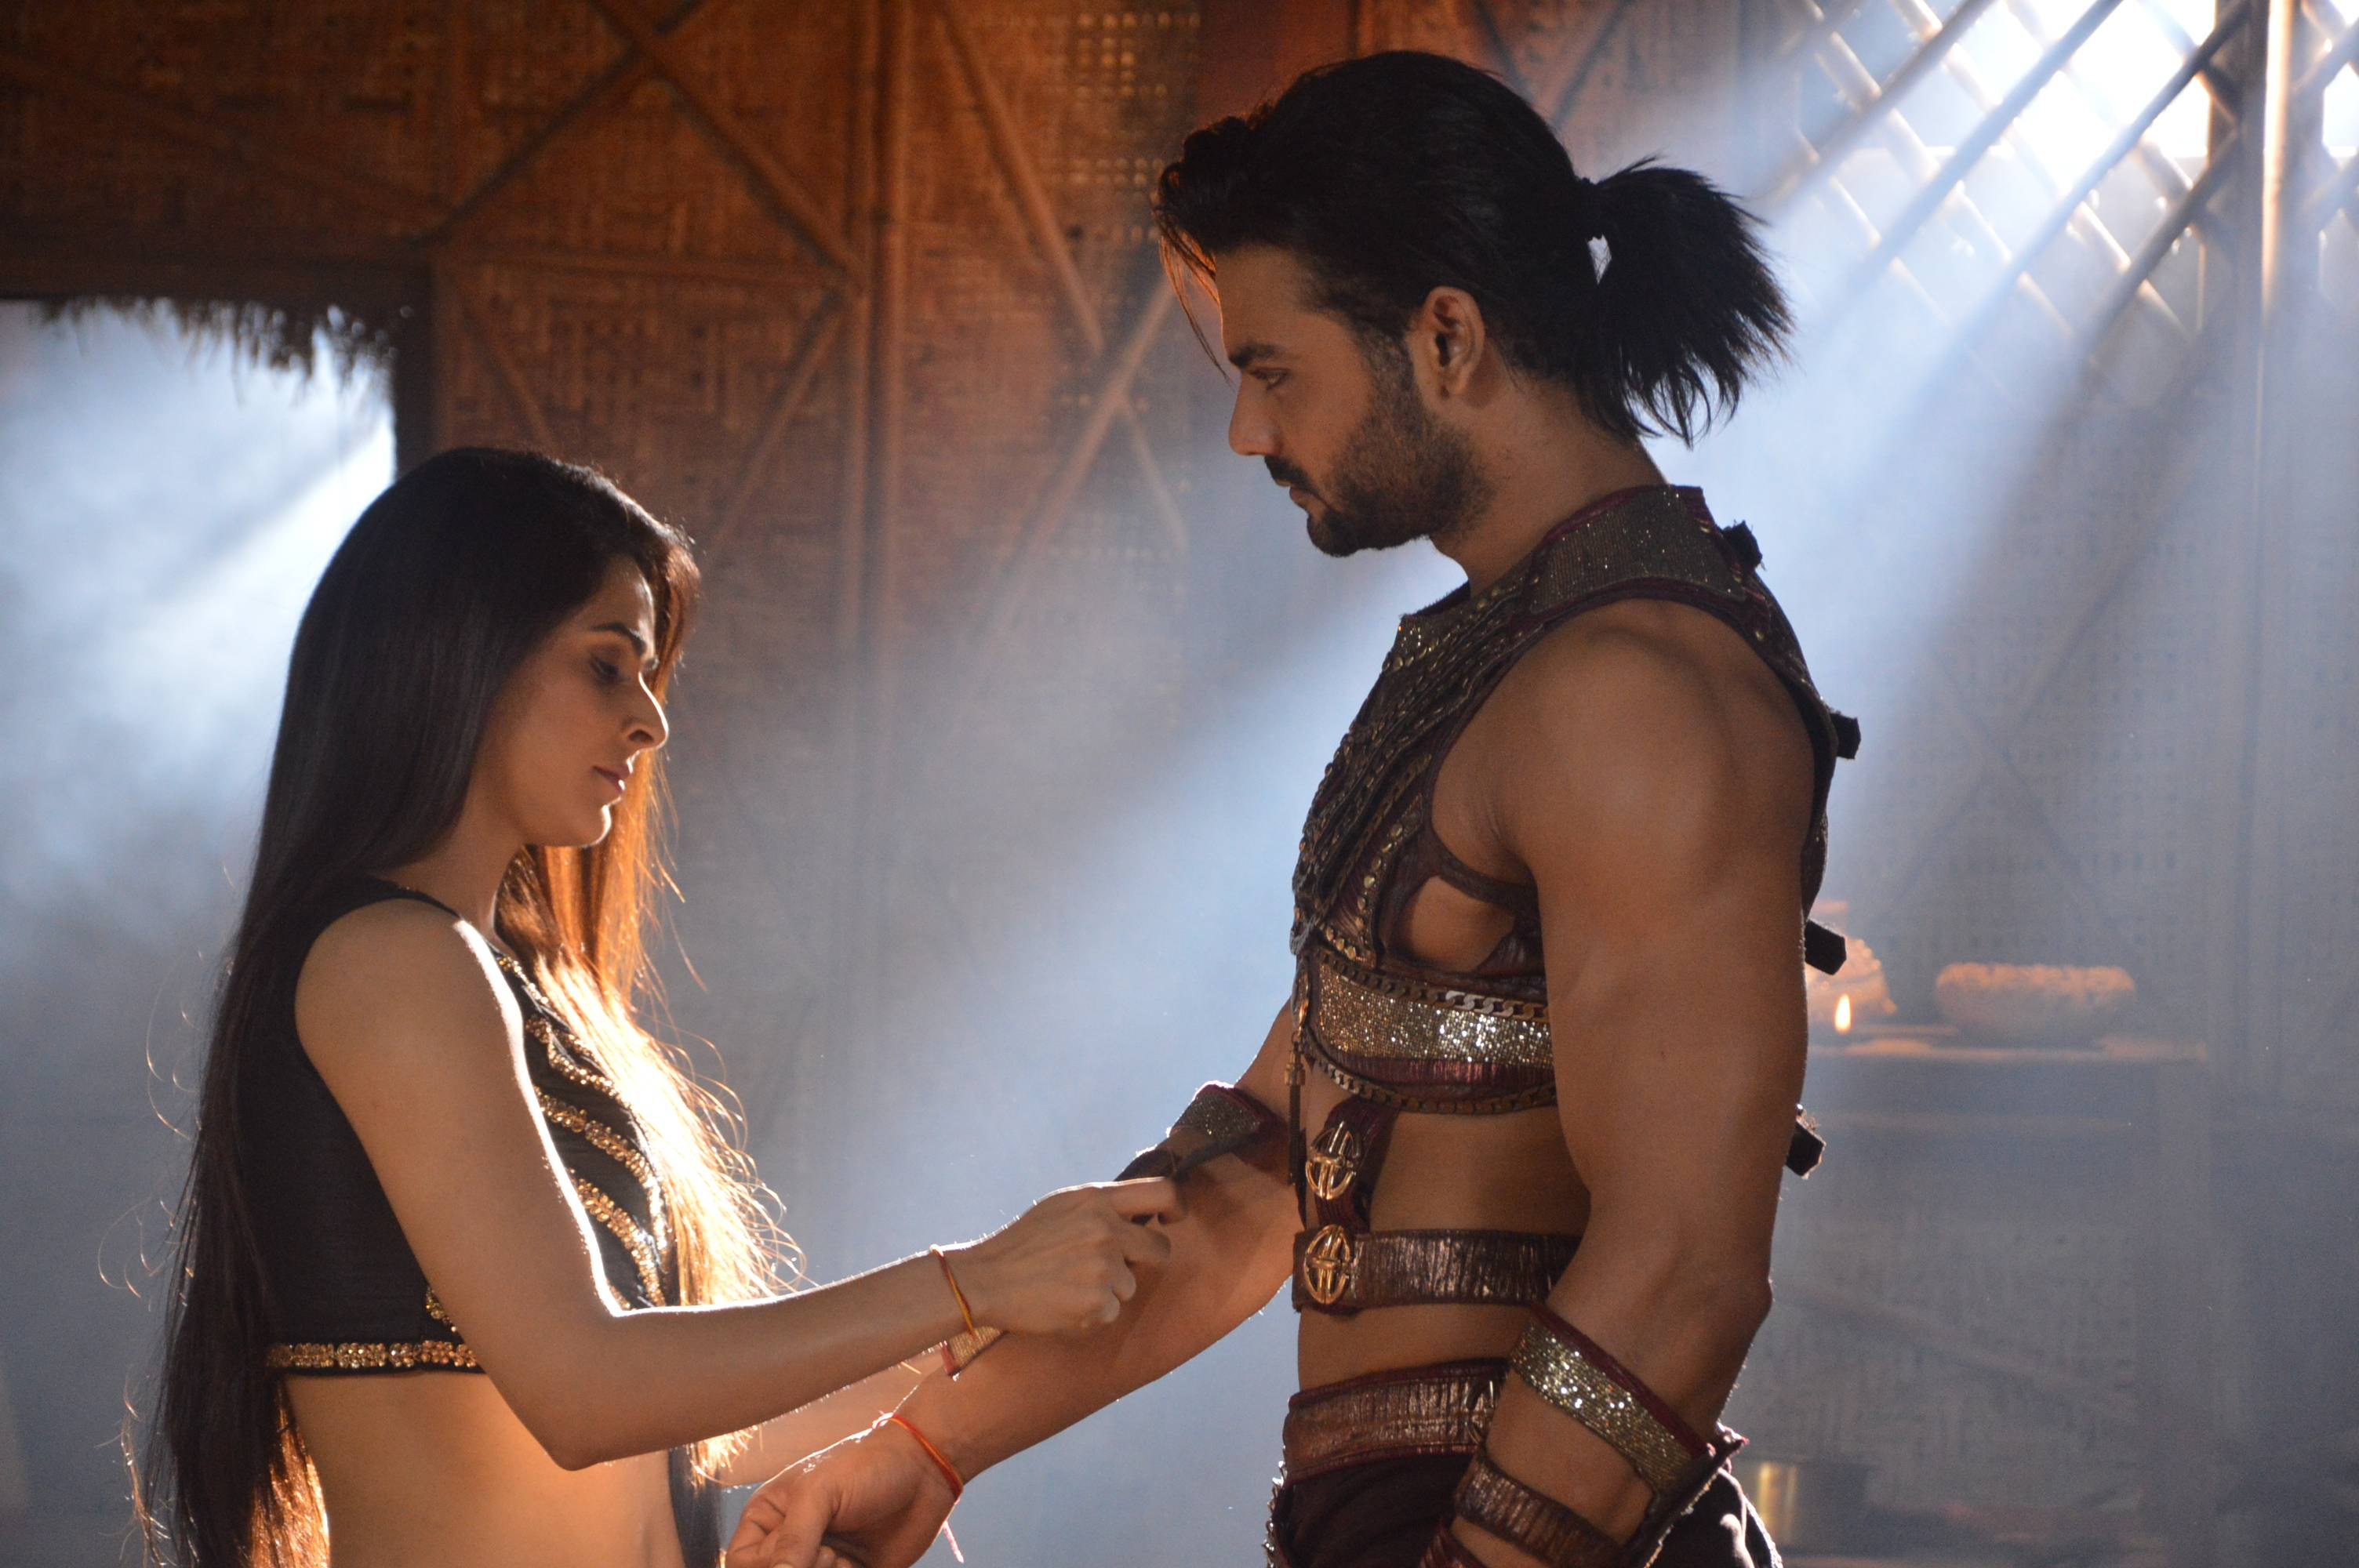 These adorable moments between Chandrakanta & Veer will melt your heart.